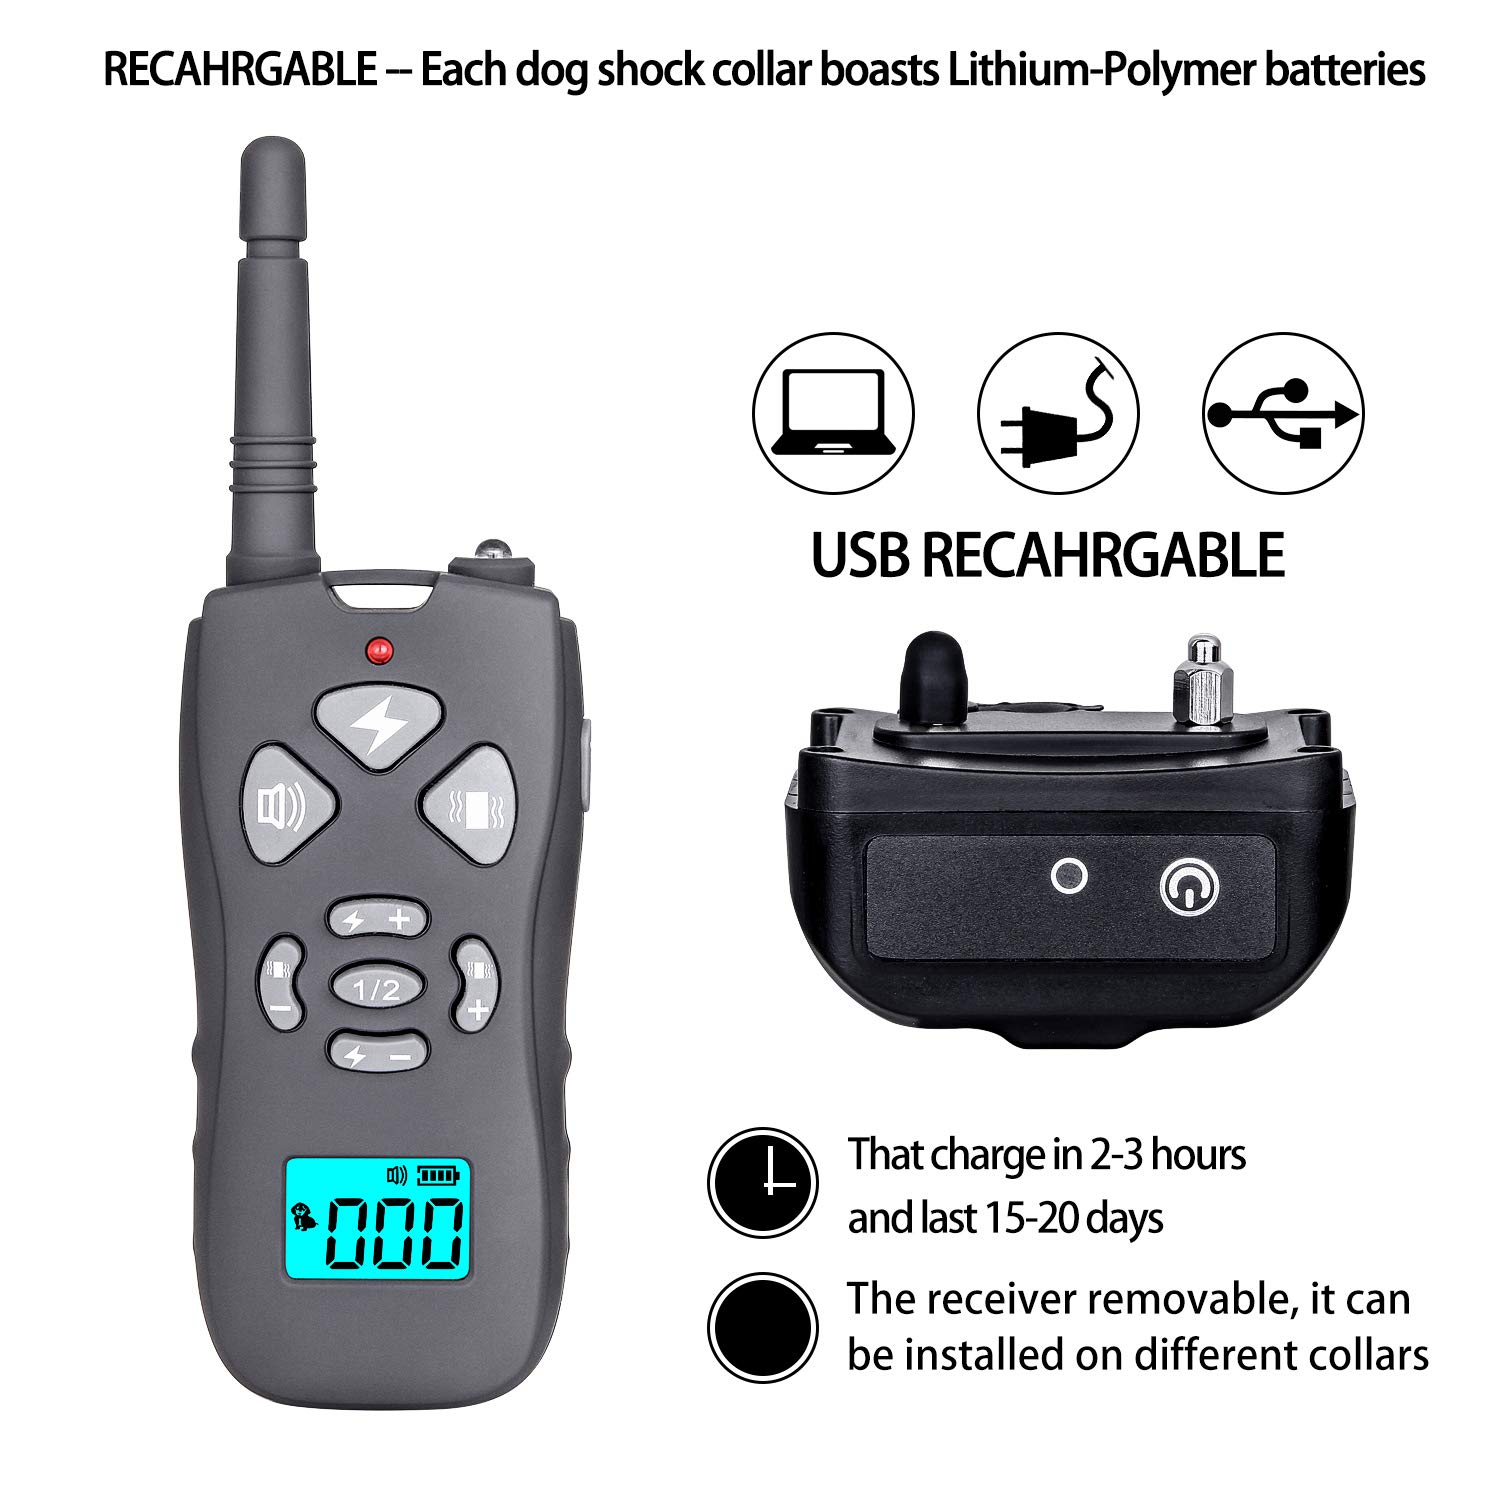 CANAVIS Dog Shock Collar with 1800Ft Remote, Waterproof Dog Training Collar, Rechargeable Electronic Collar with Vibration Tone Shock Modes, Adjustable Collar Strap for Small Medium Large Dog by CANAVIS (Image #8)